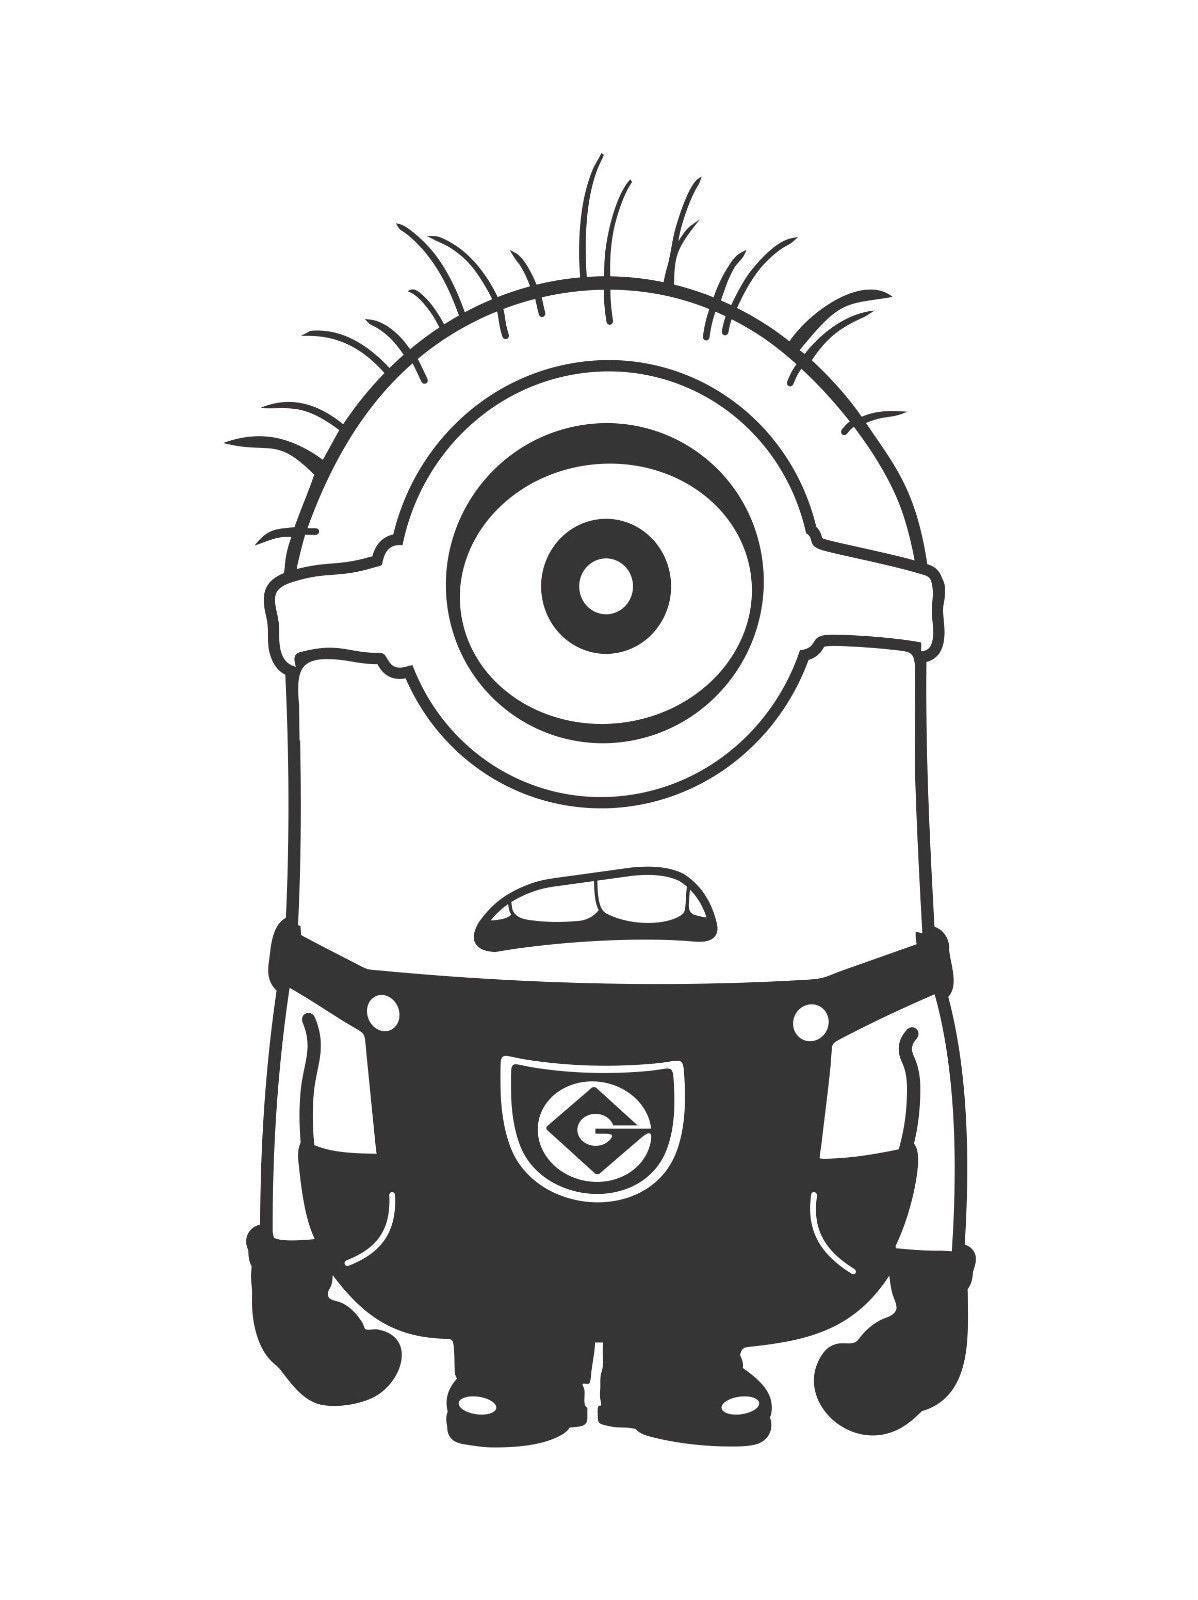 Despicable Me One Eyed Confused Minion